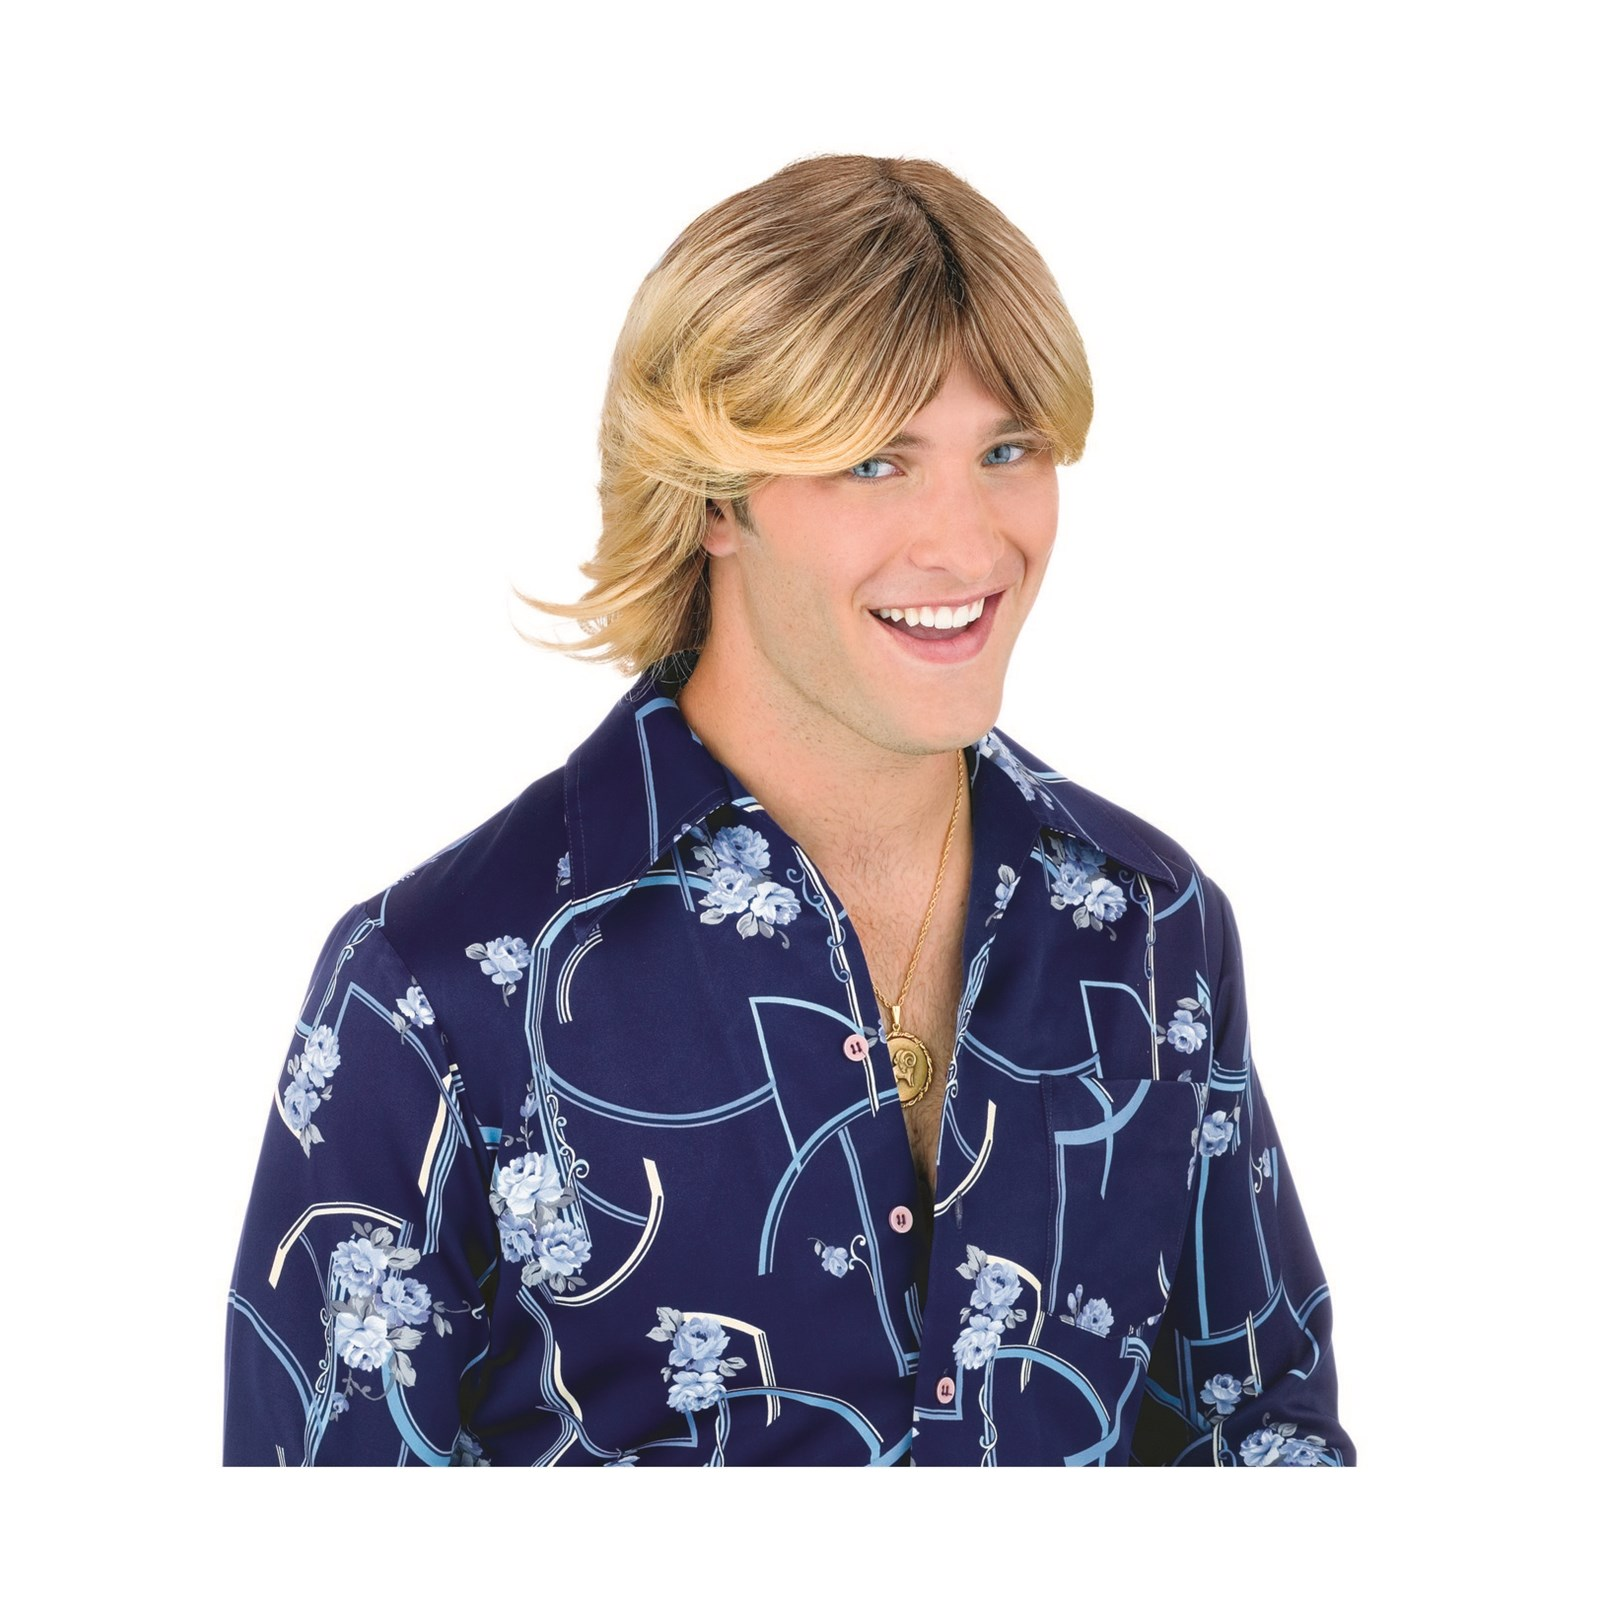 Ladies Man Wig Adult- Blonde Halloween Costume Accessory